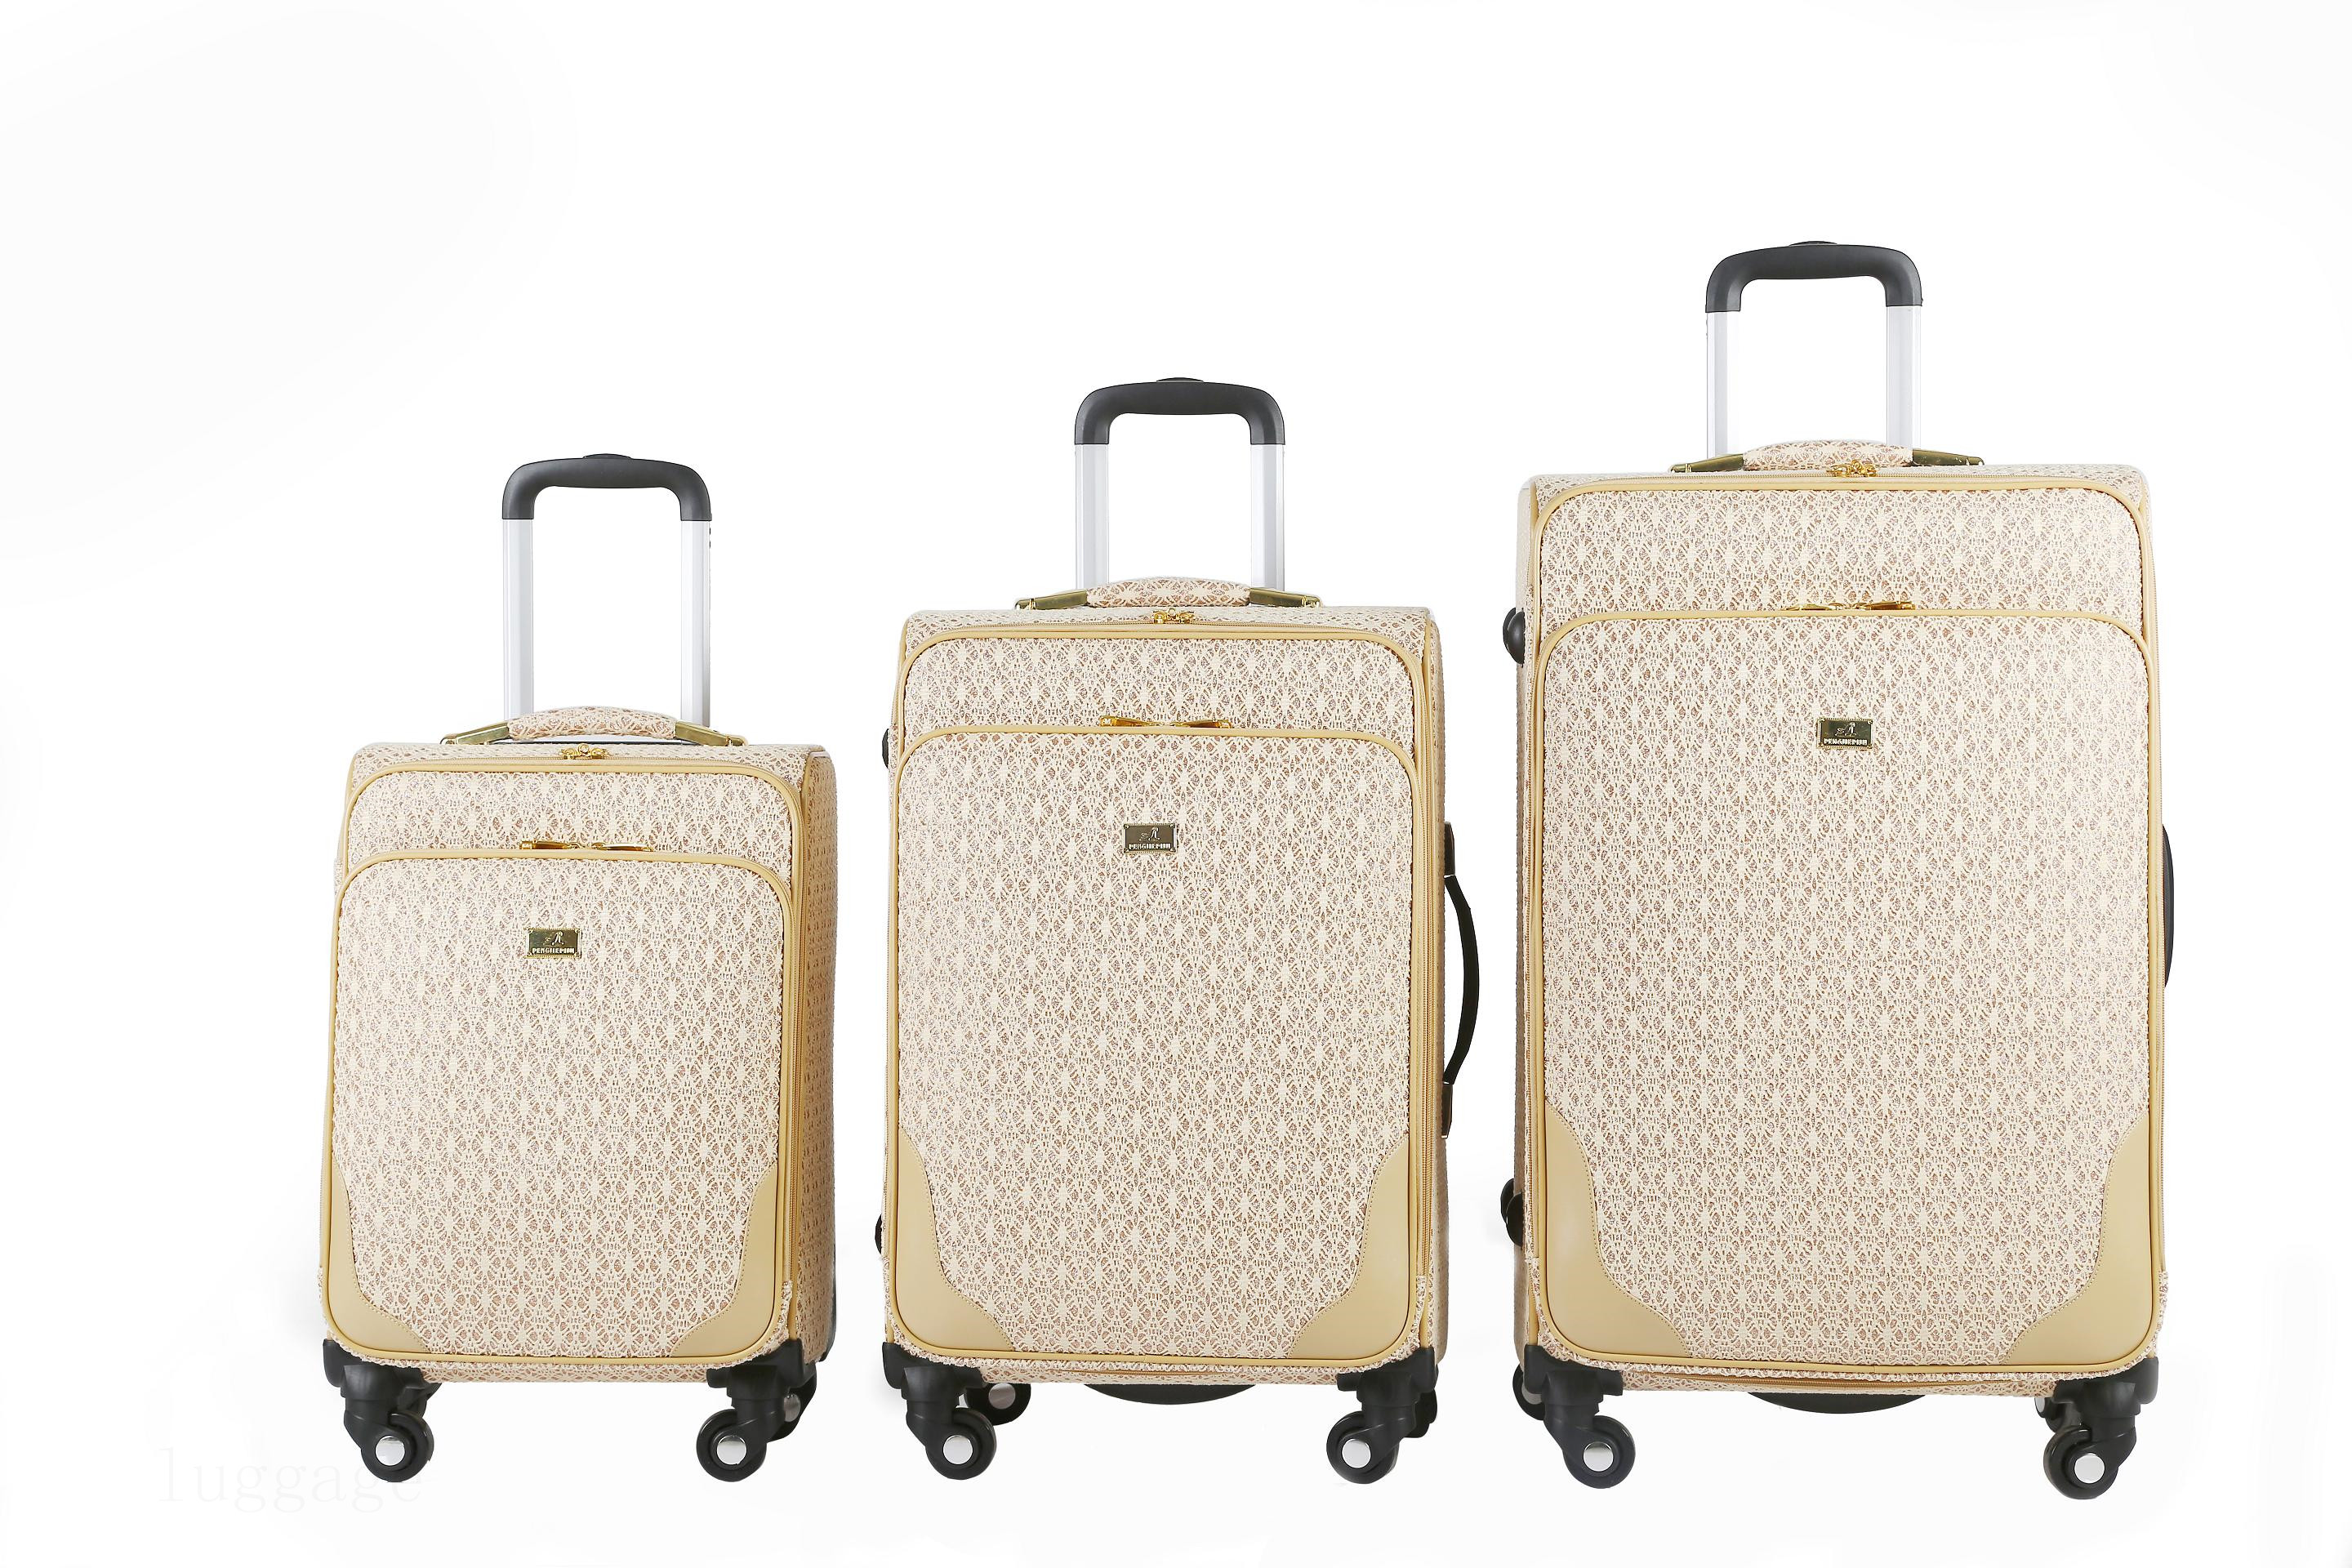 3176# PU LUGGAGE BAGS